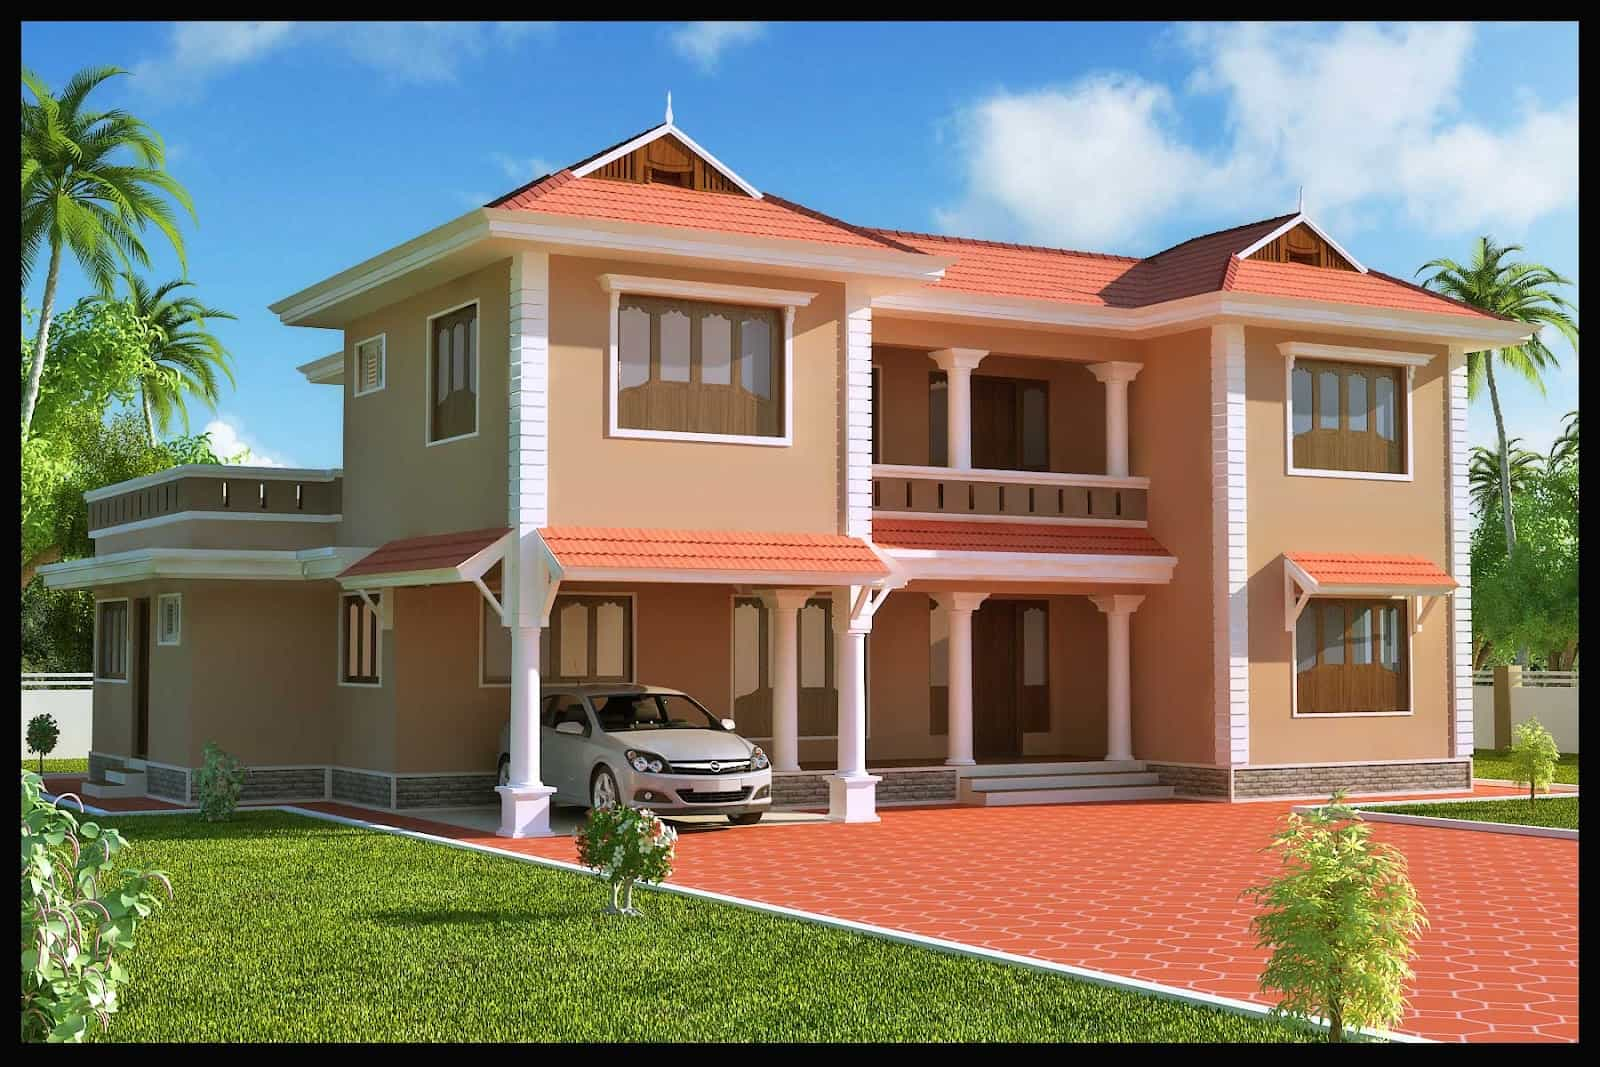 Stylish Indian Duplex house exterior design - Download Village Indian Small House Design PNG